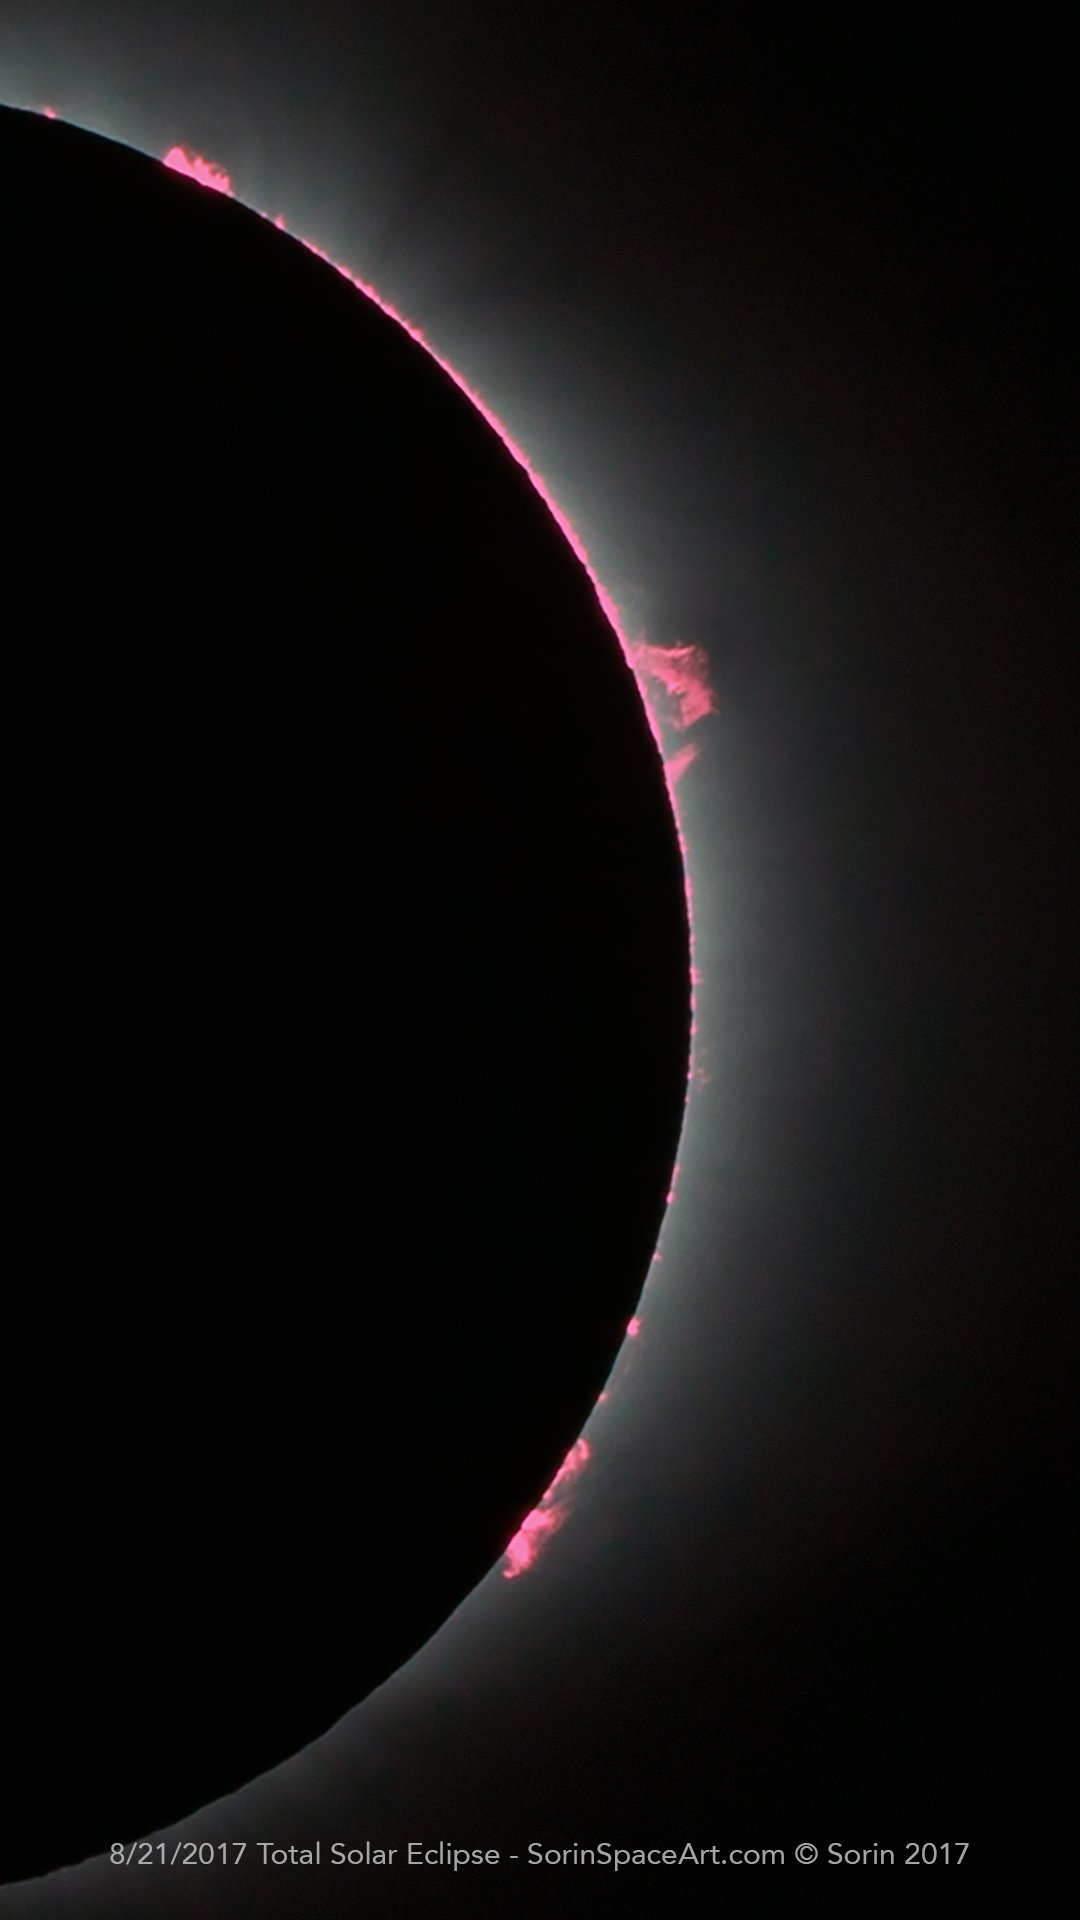 Free Eclipse Wallpapers for iPhone – Mile High Astronomy